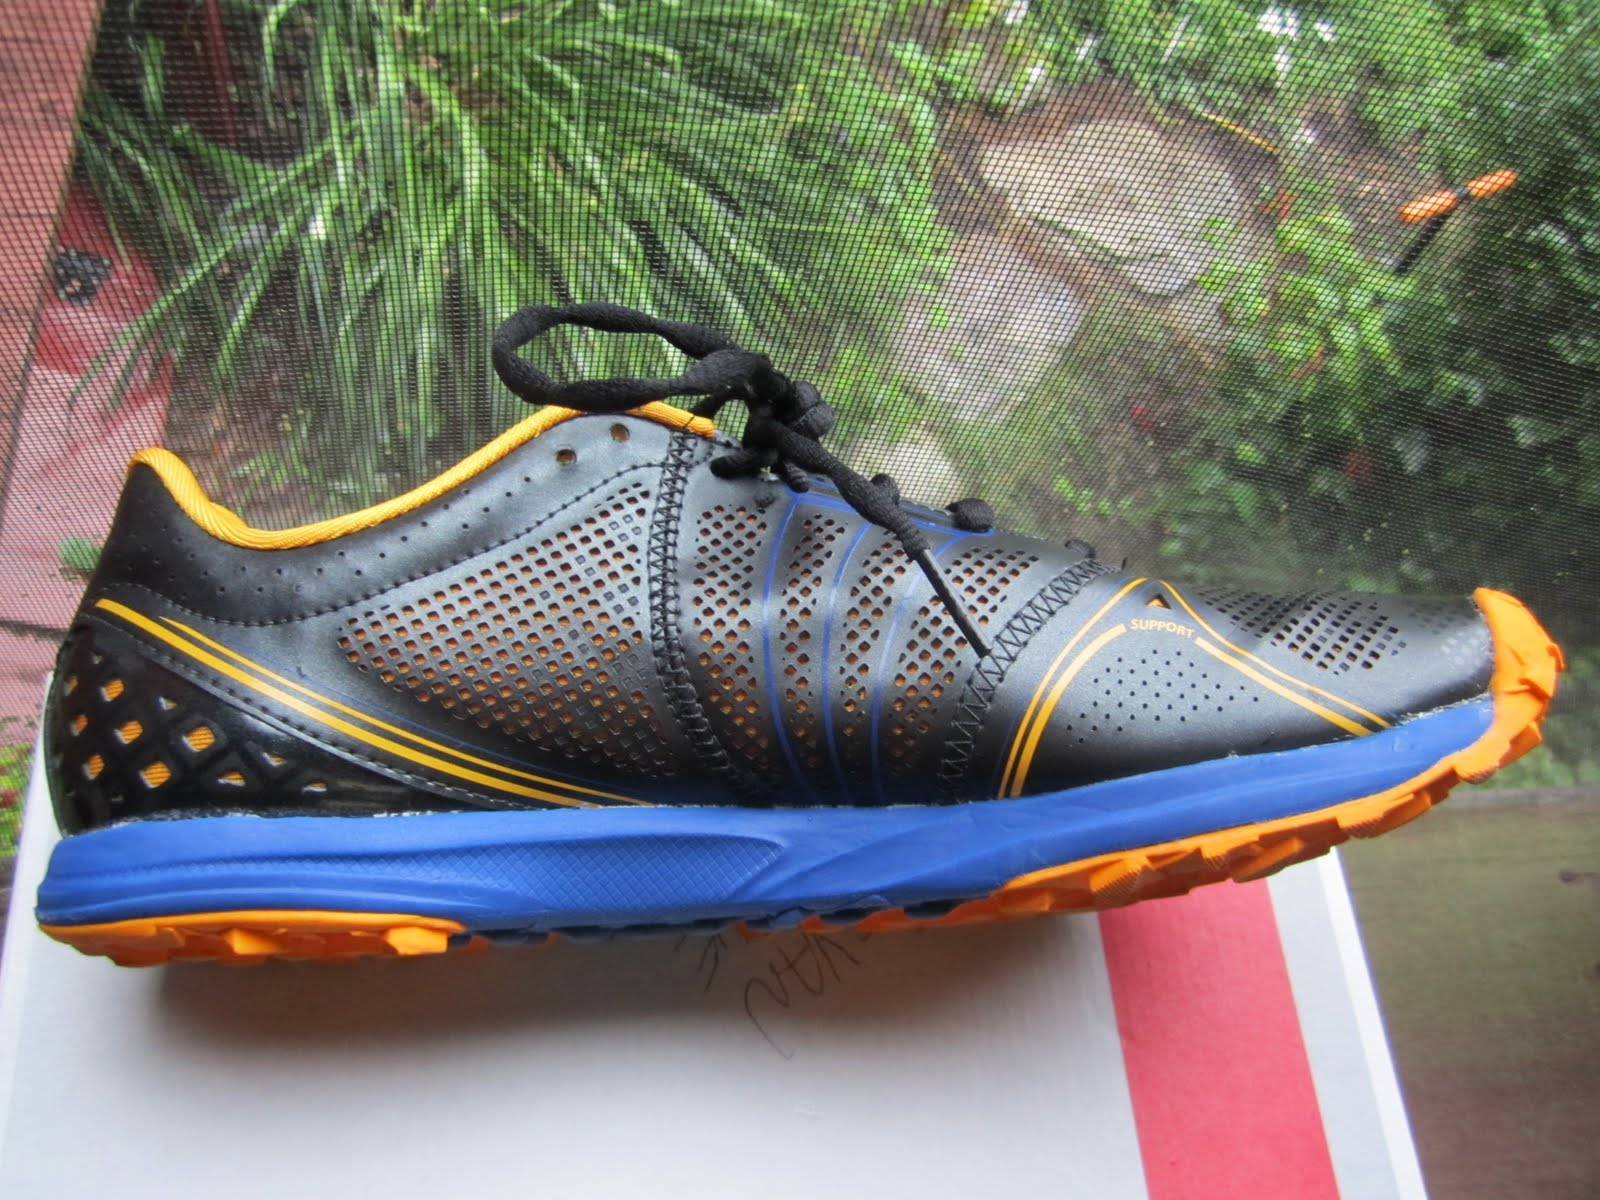 dbca9c95cc00b New Balance MT110 Trail Running Shoe Review by Nate Sanel